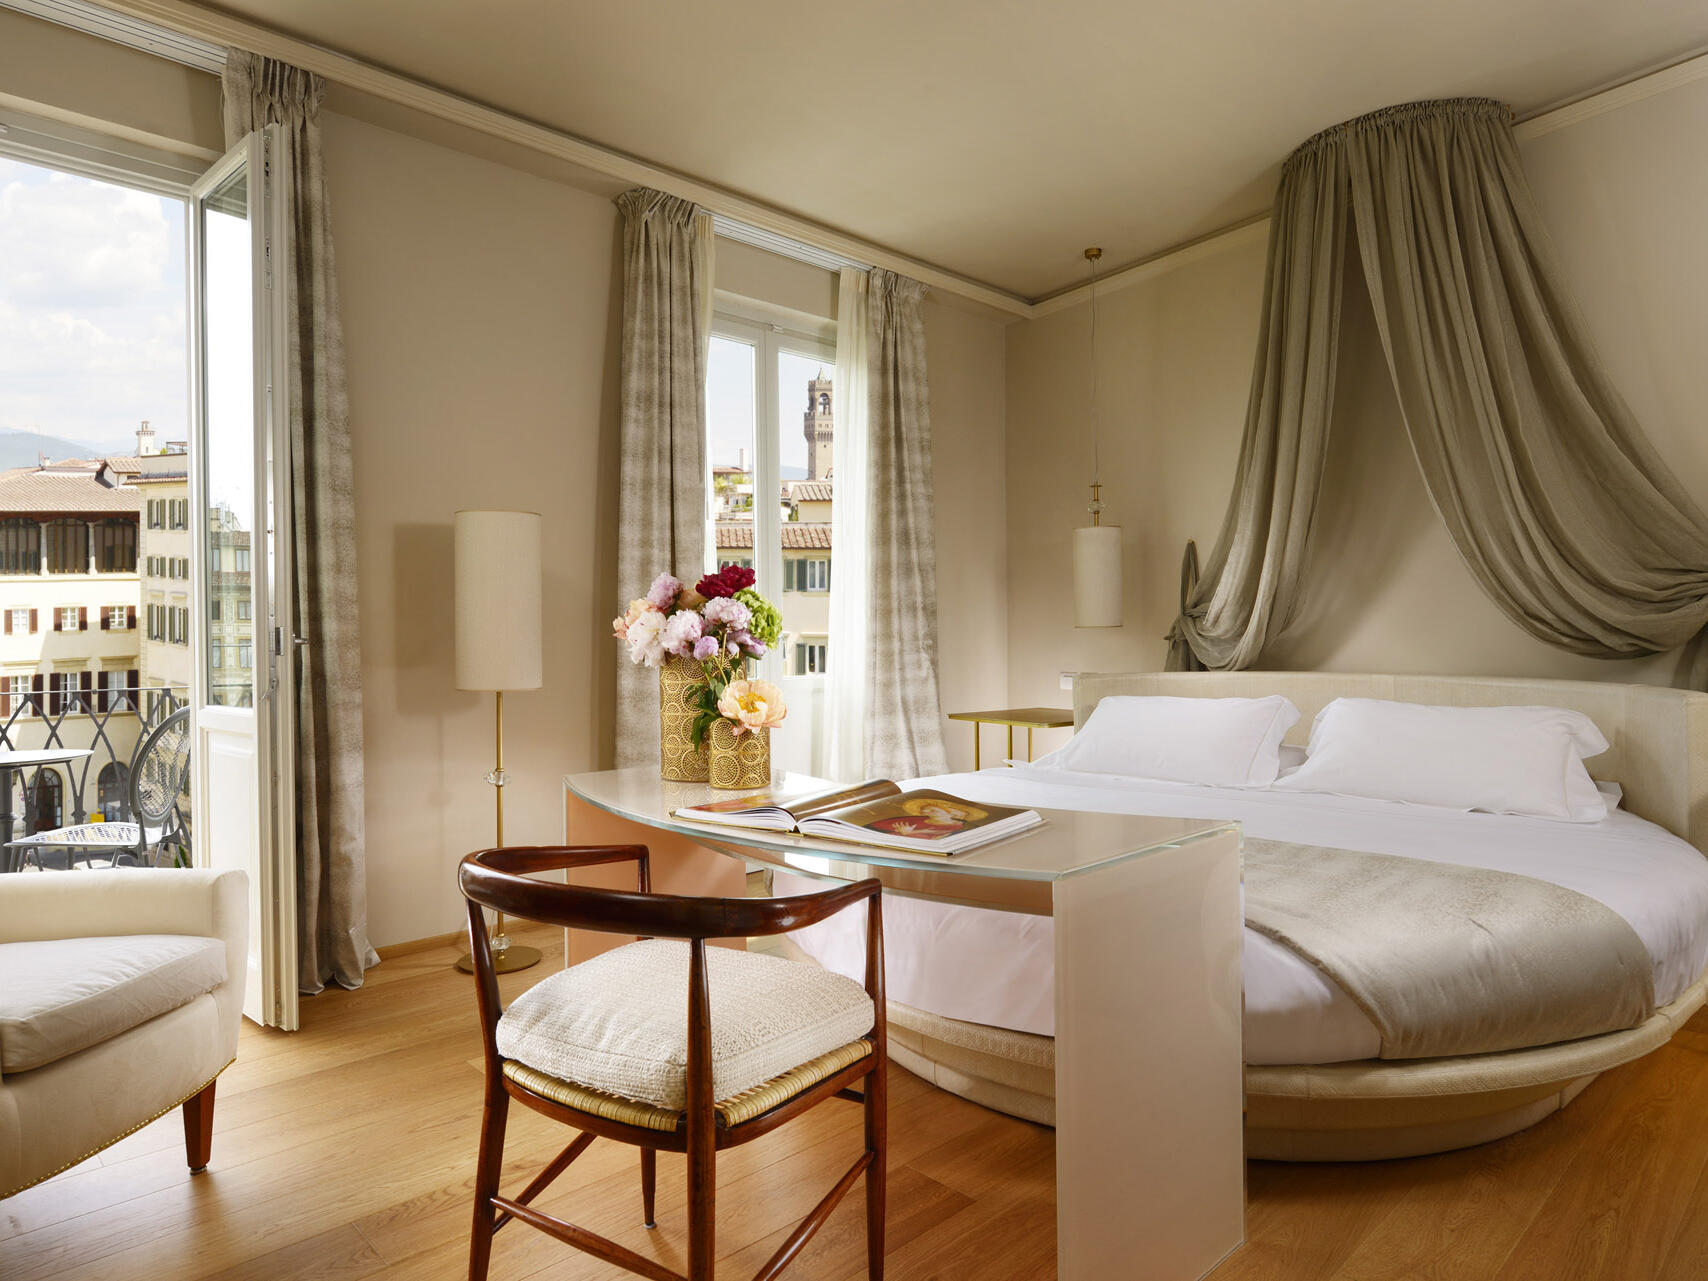 City view bedroom with a balcony  at Grand Hotel Minerva